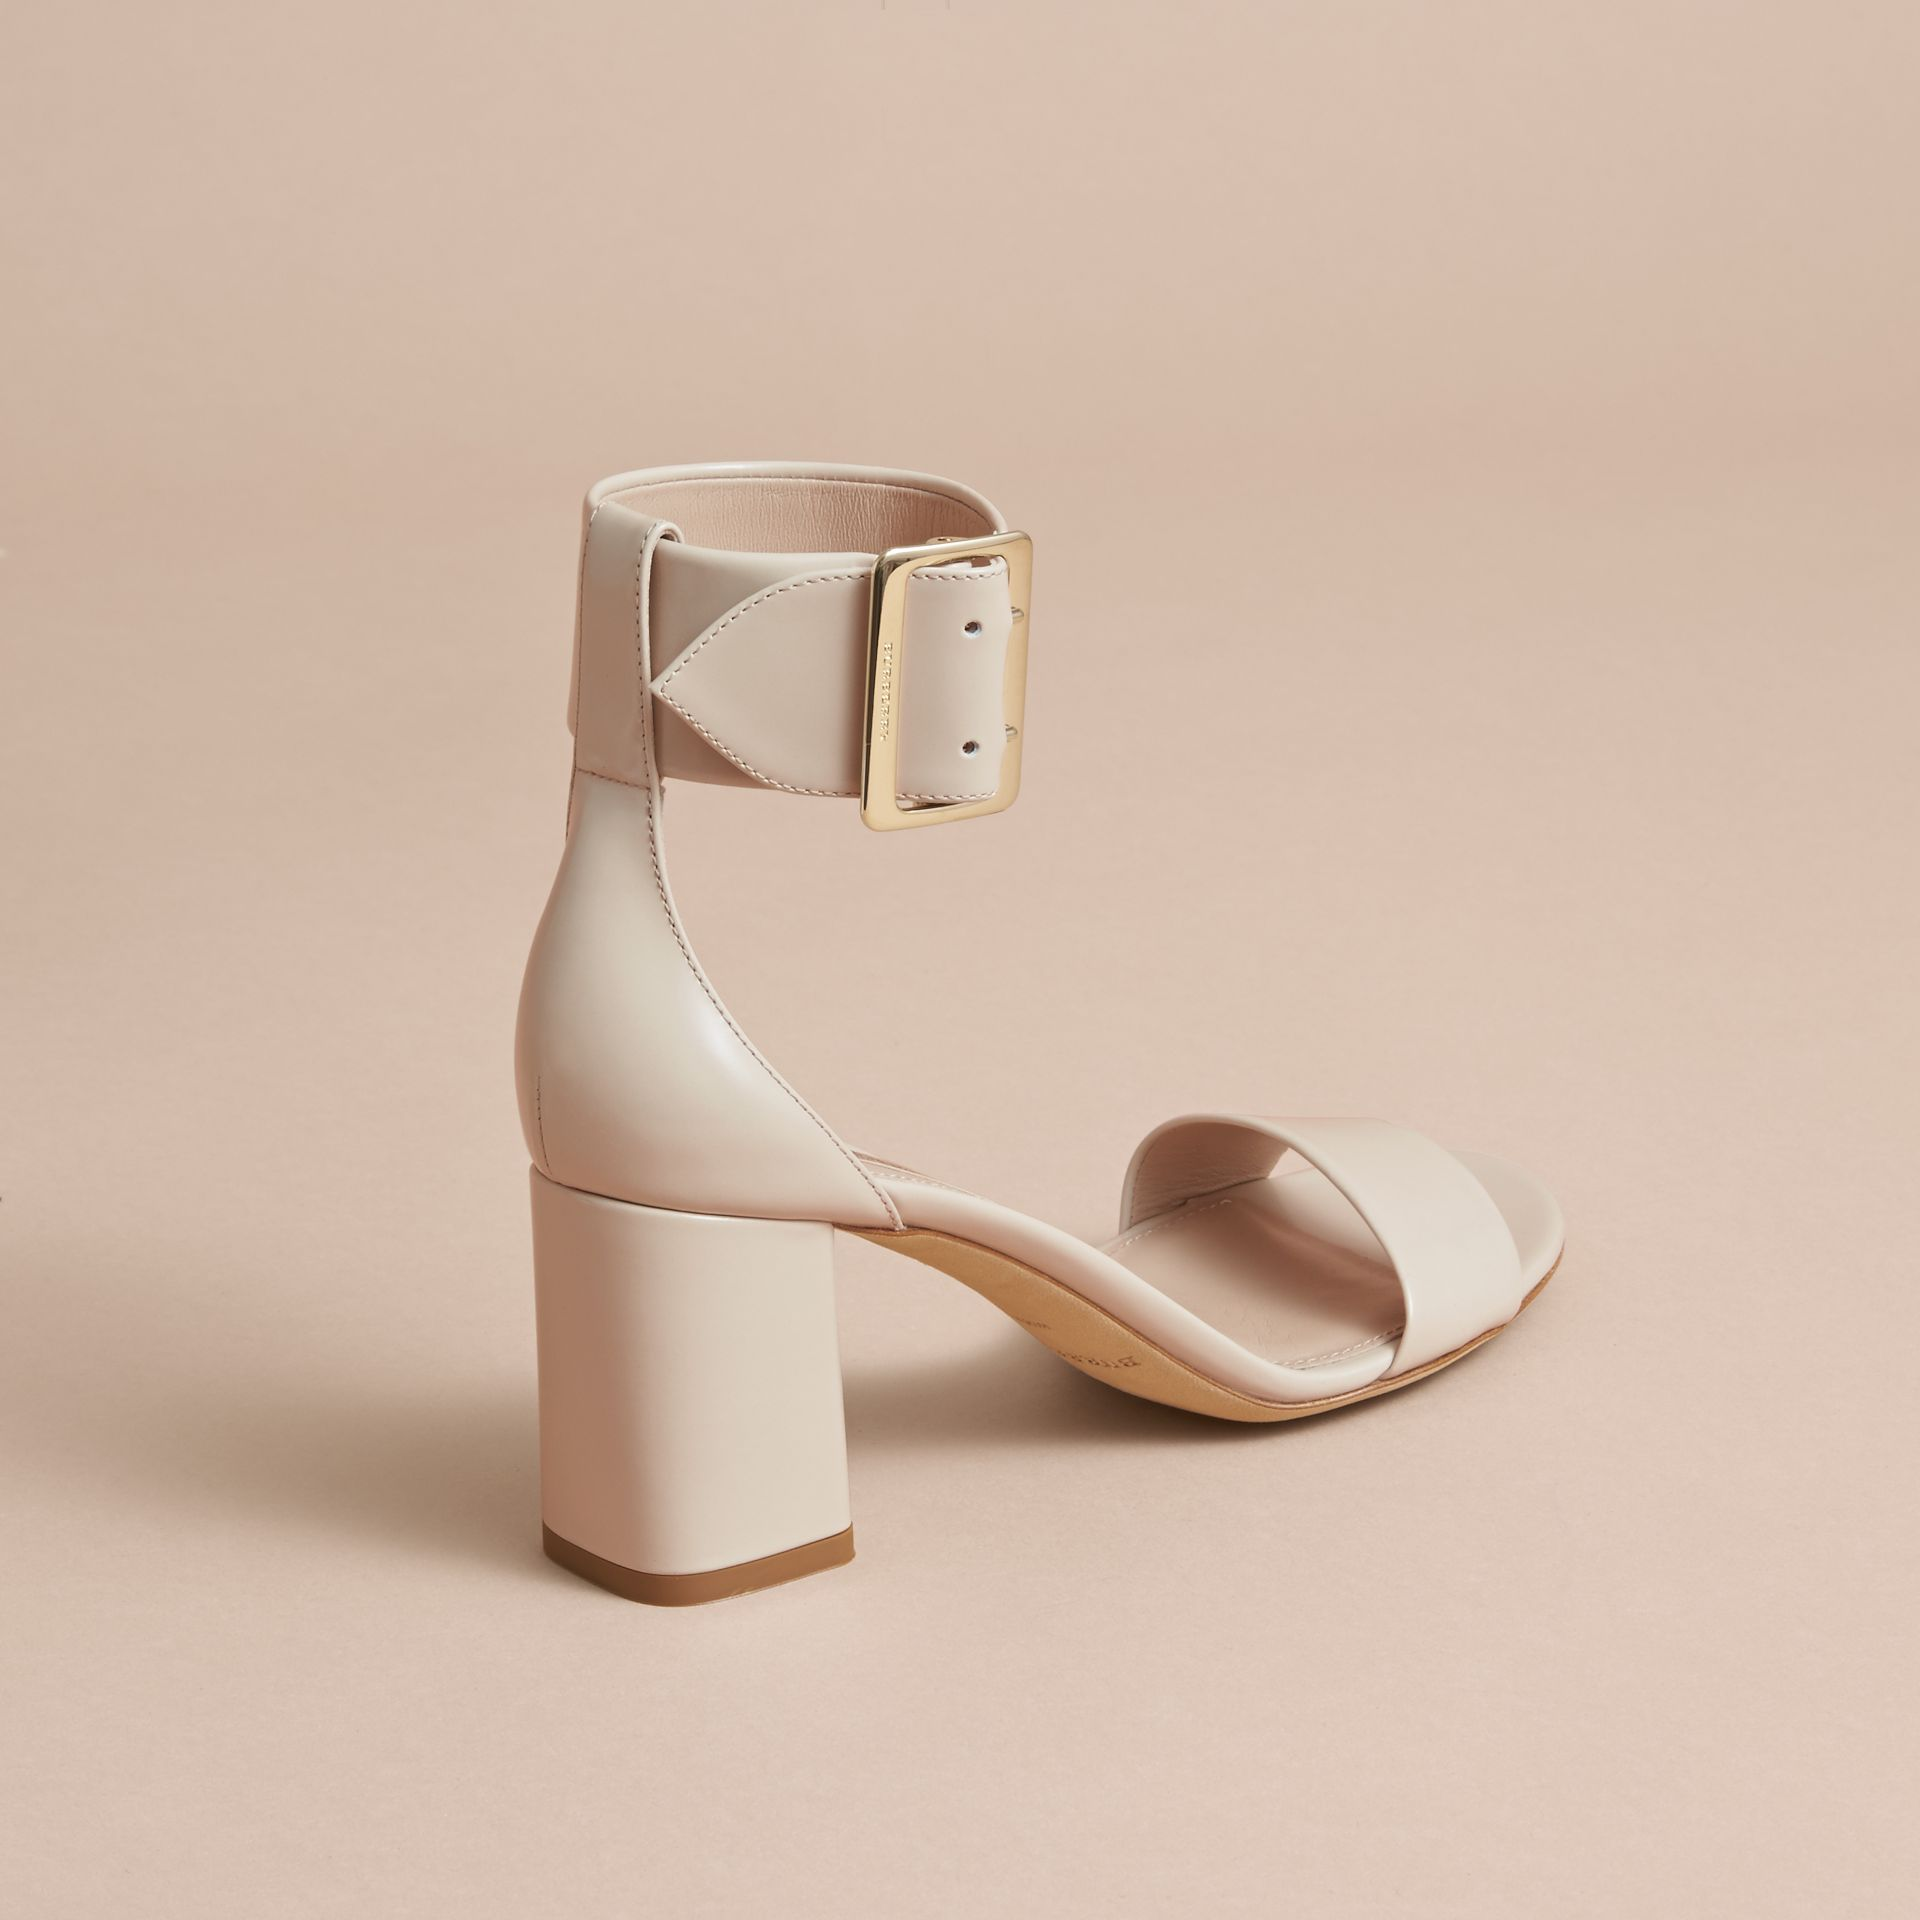 Buckle Detail Patent Leather Sandals in Pale Taupe - Women | Burberry - gallery image 4